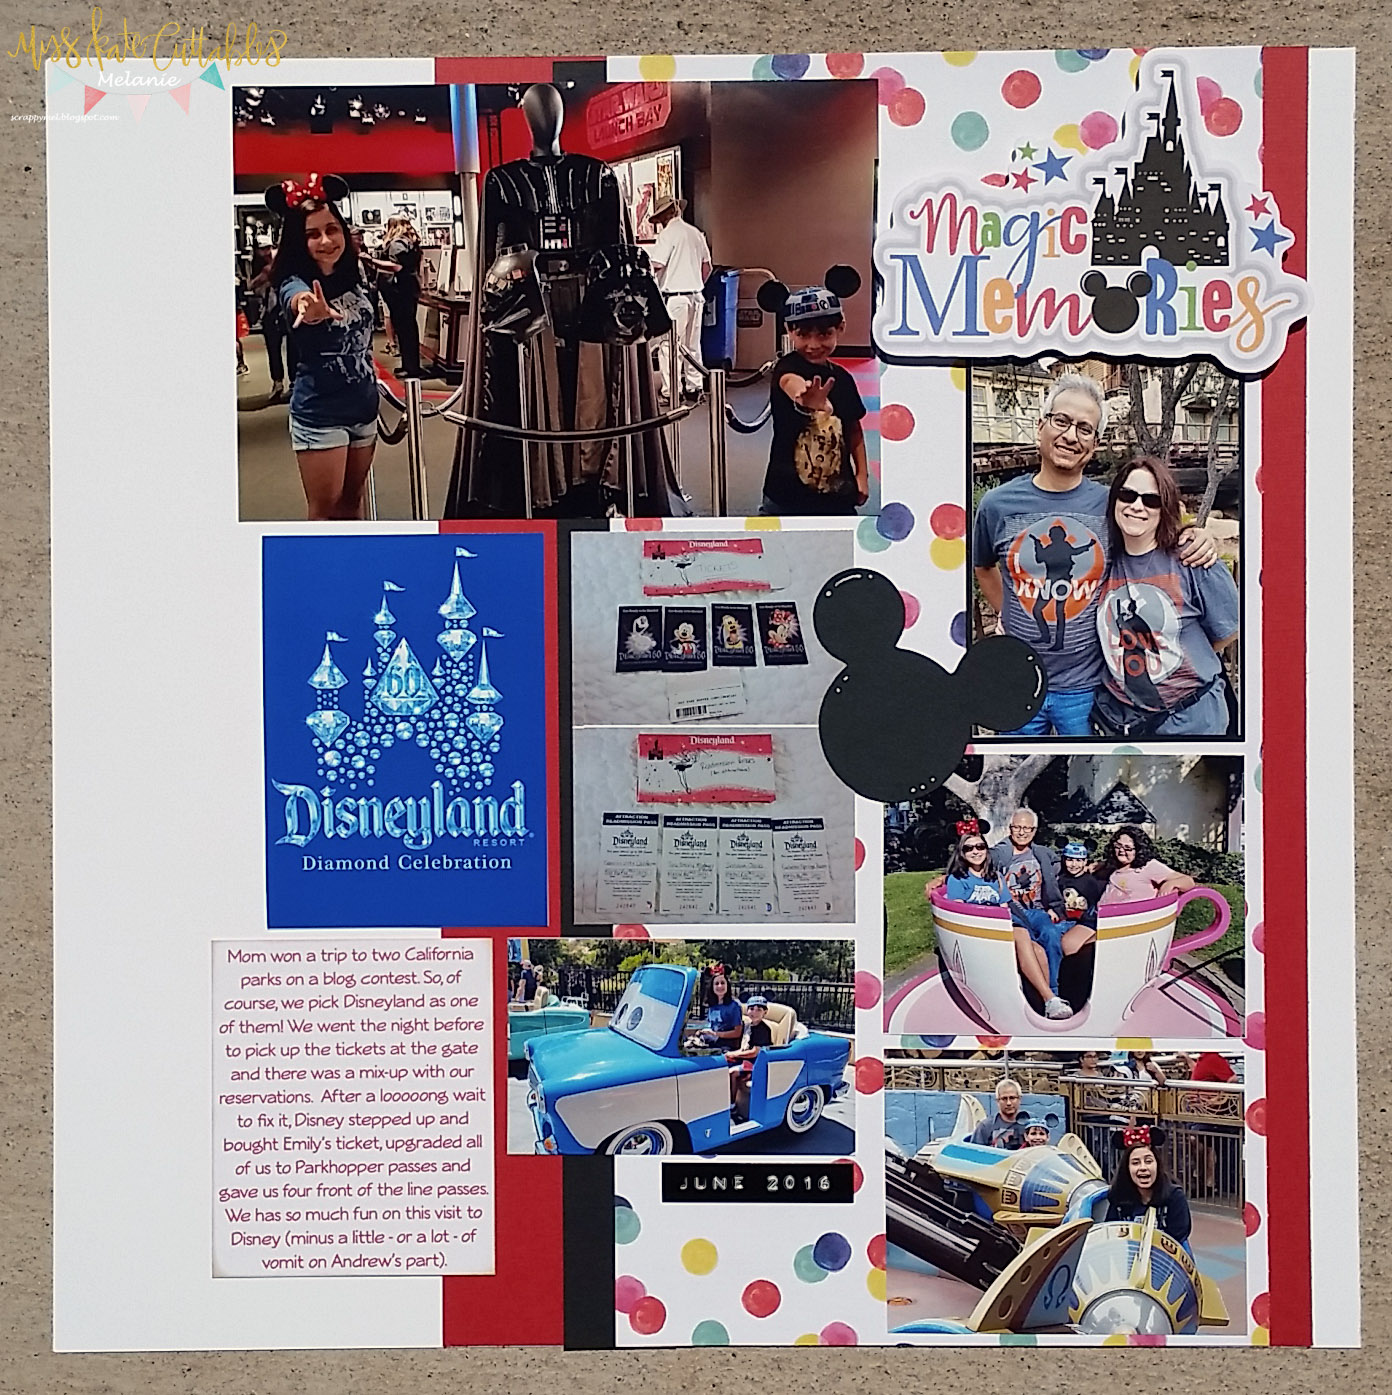 How to make scrapbook using illustration board - I Used To Miss Kate Designs Files For This Page Magic Memories Title And Mouse Memories Boy For The Mickey Head I Did A Print And Cut For The Title And